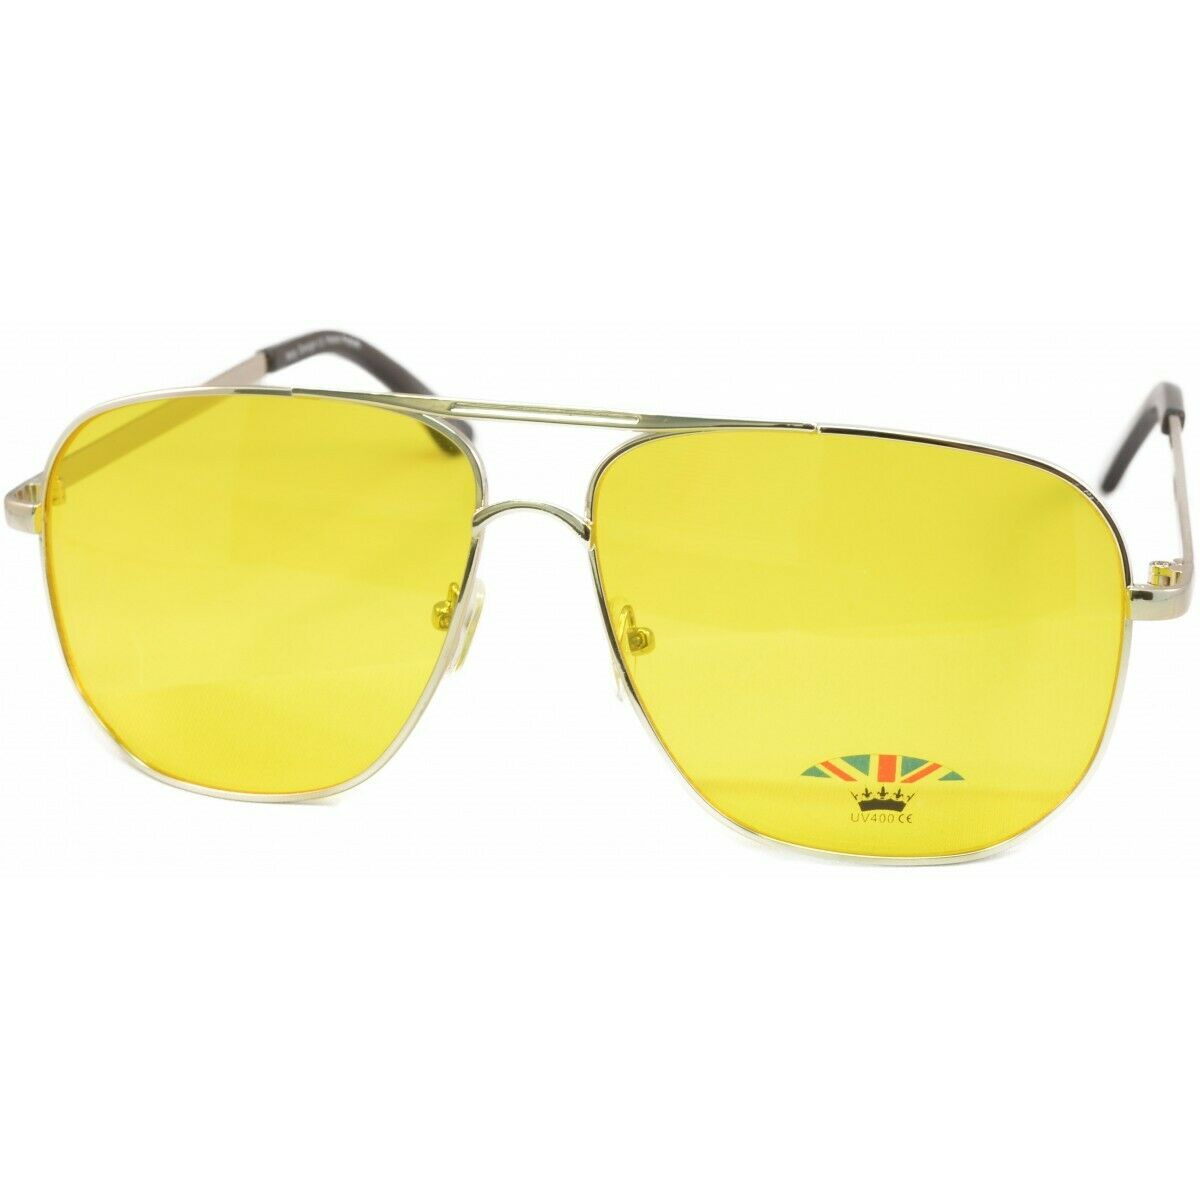 High Quality Aviation Style Classic Colour Full Sunglasses Eyeglasses In London